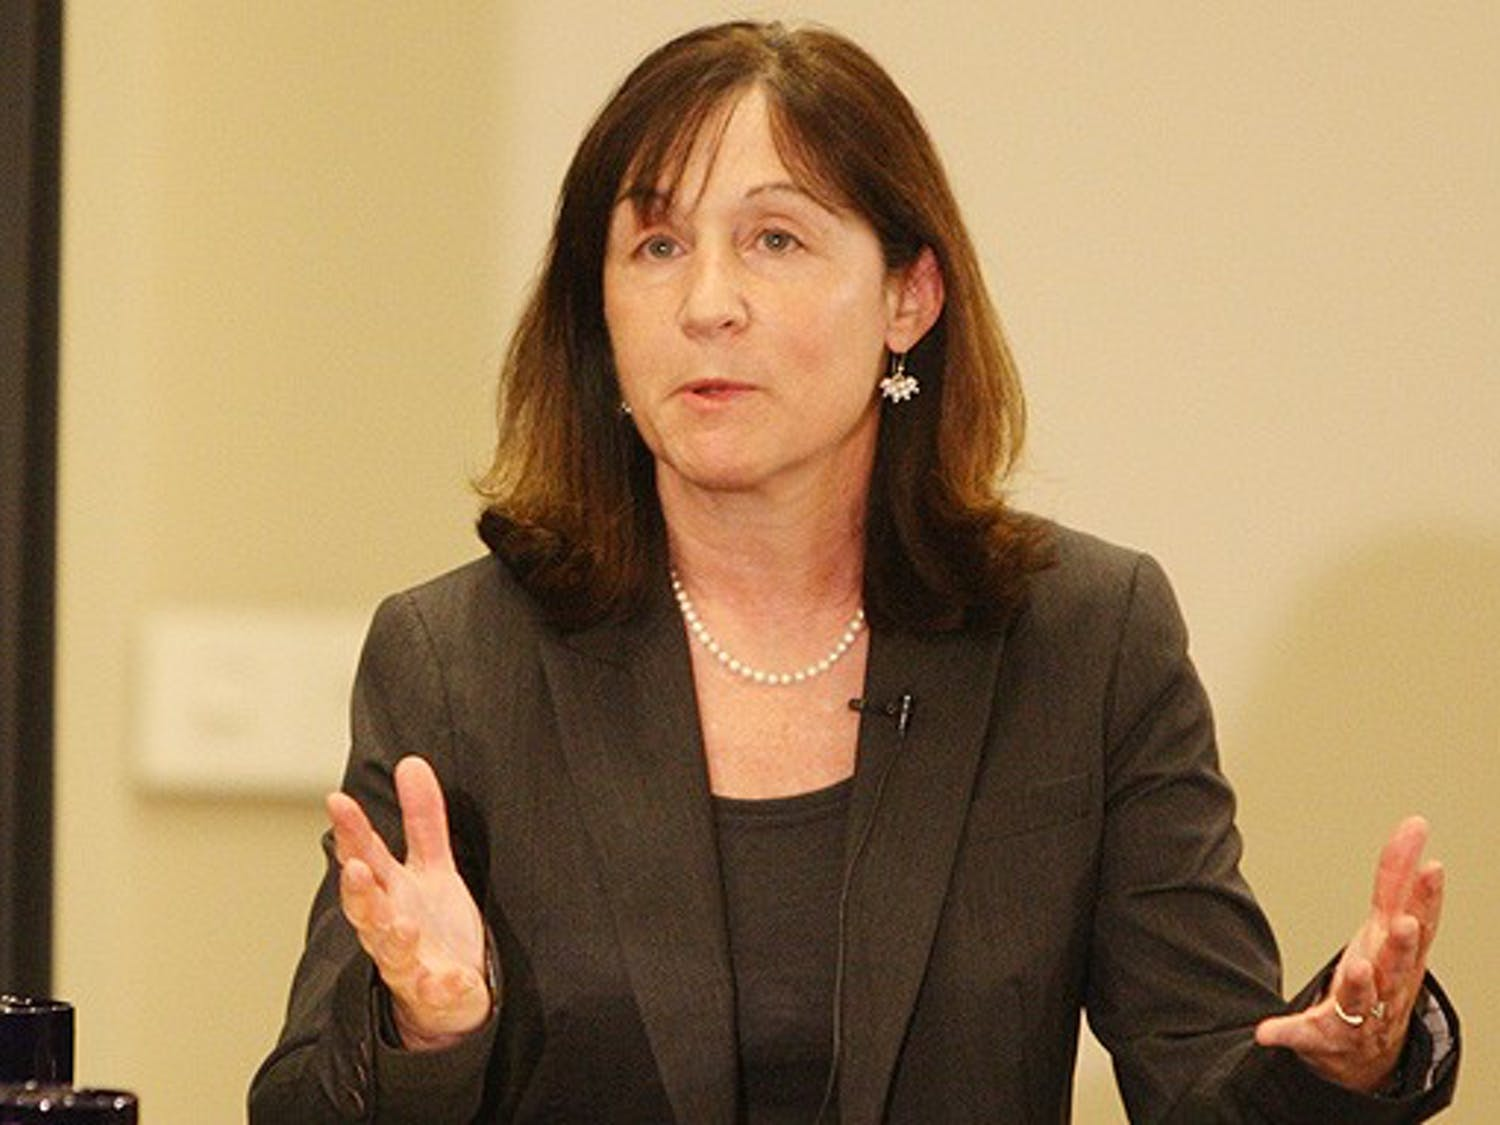 Jane Mayer spoke at the Sanford School of Public Policy Monday. The investigative journalist offered her thoughts on the war on terror and disputed the effectiveness of FBI and CIA interrogation tactics.